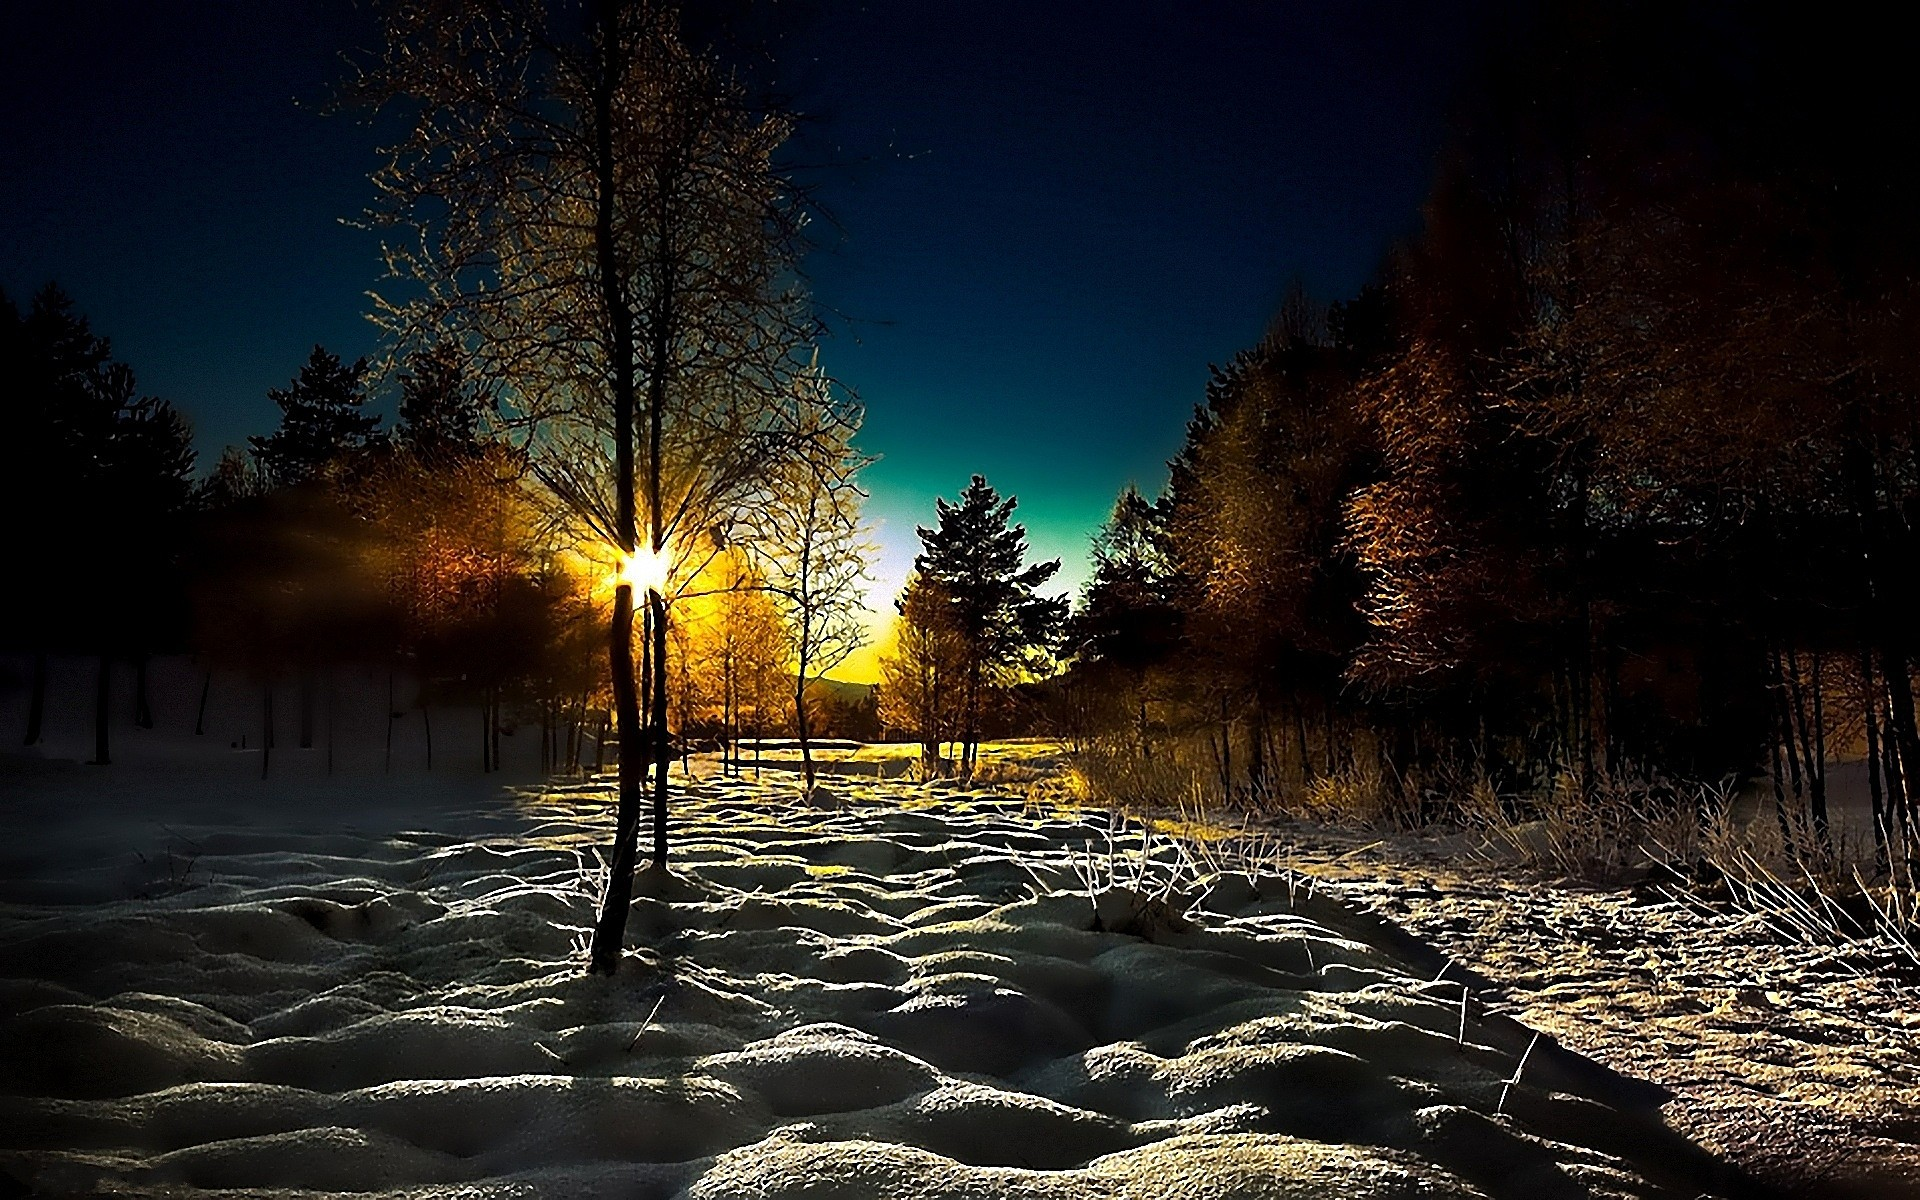 Dawn of the sun in the winter in the woodsScenery pictures for a 1138